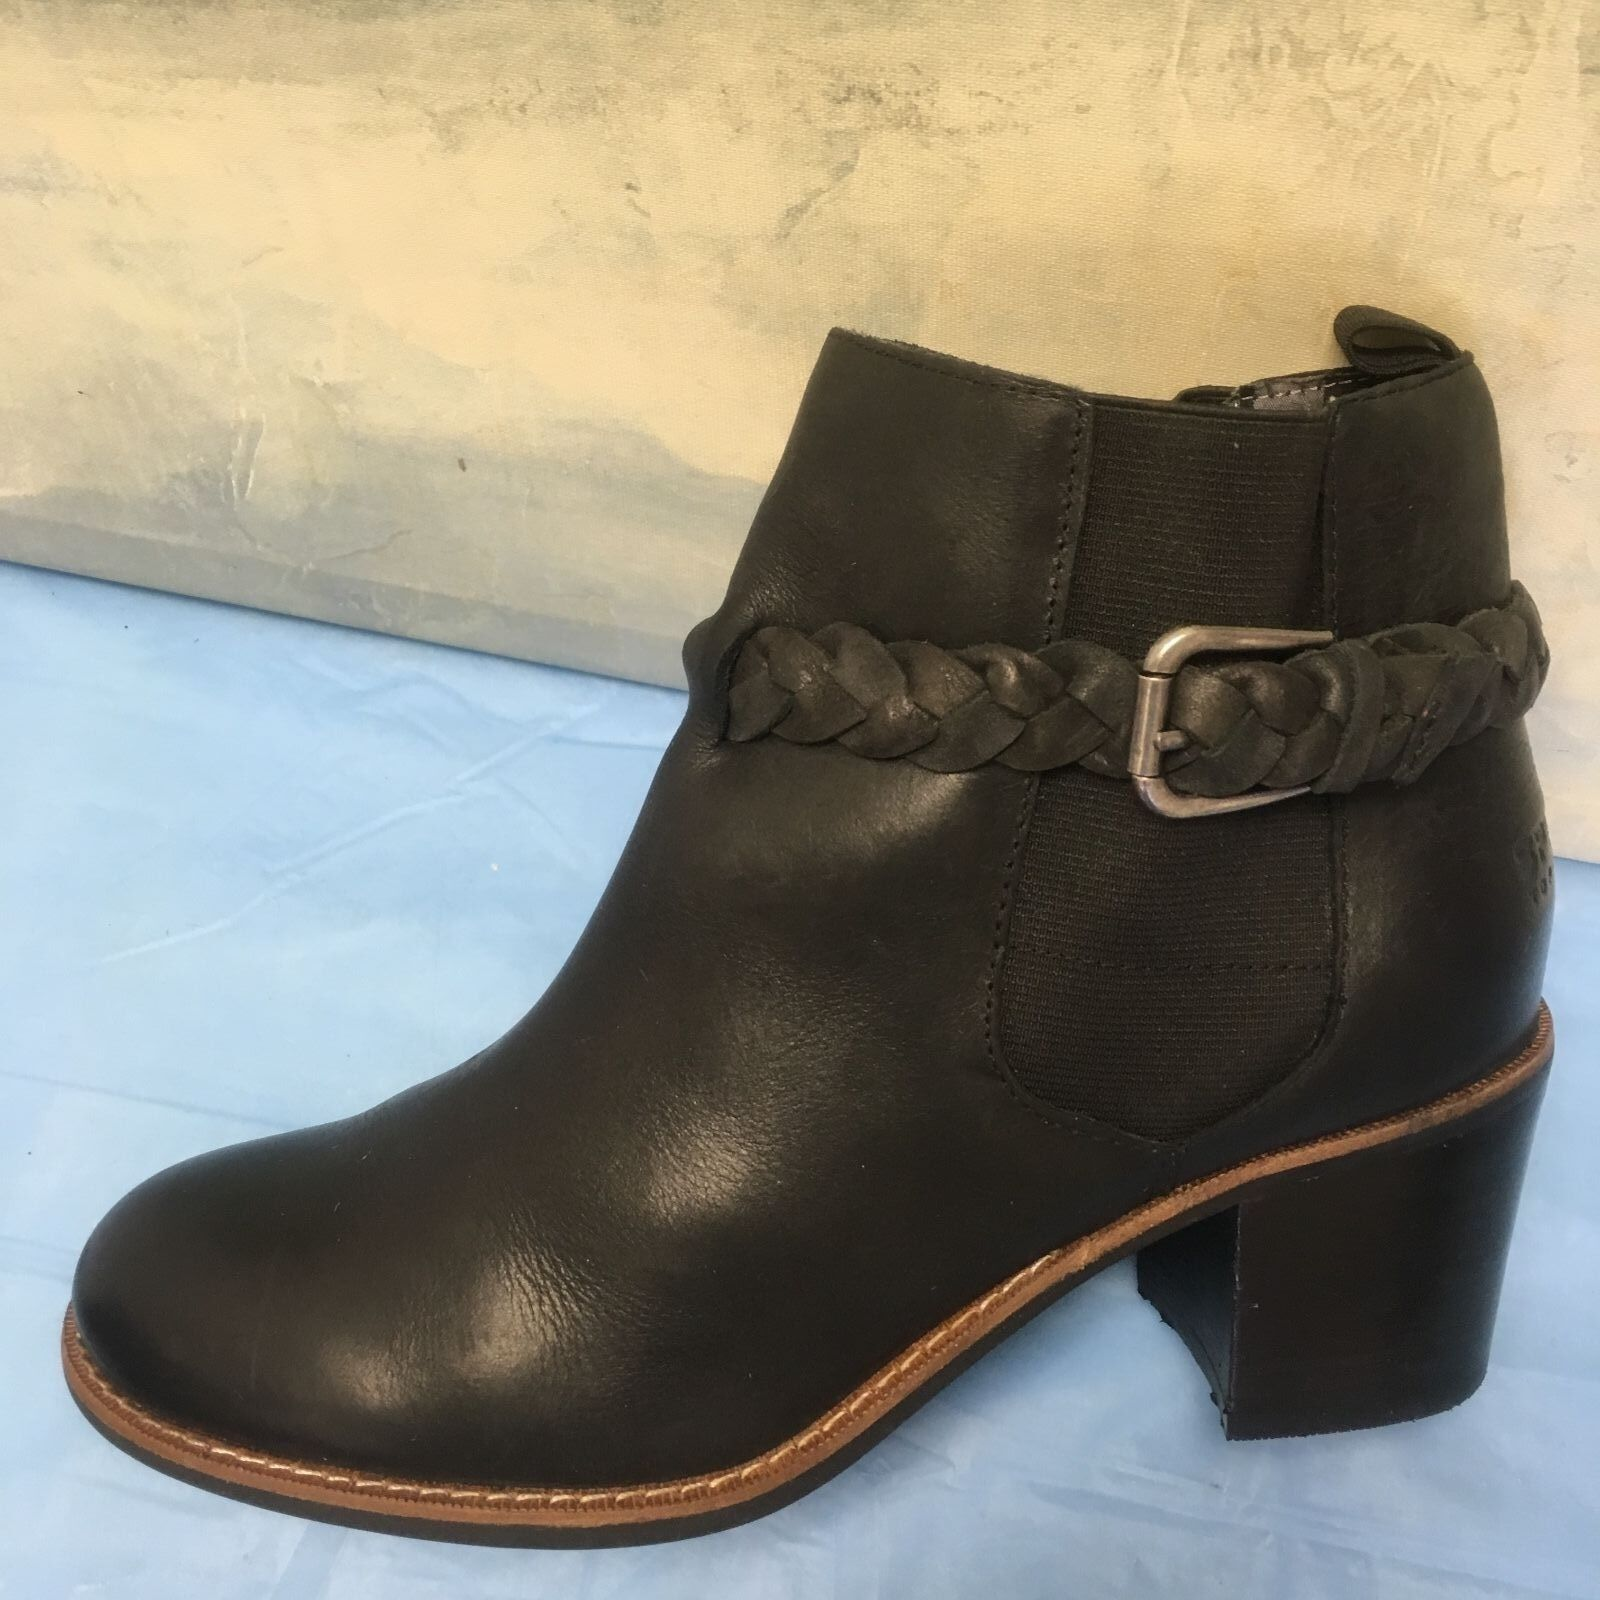 Sperry Top Sider Black Womens STS80224 Ankle Boots. Size Great Condition 8.5 M